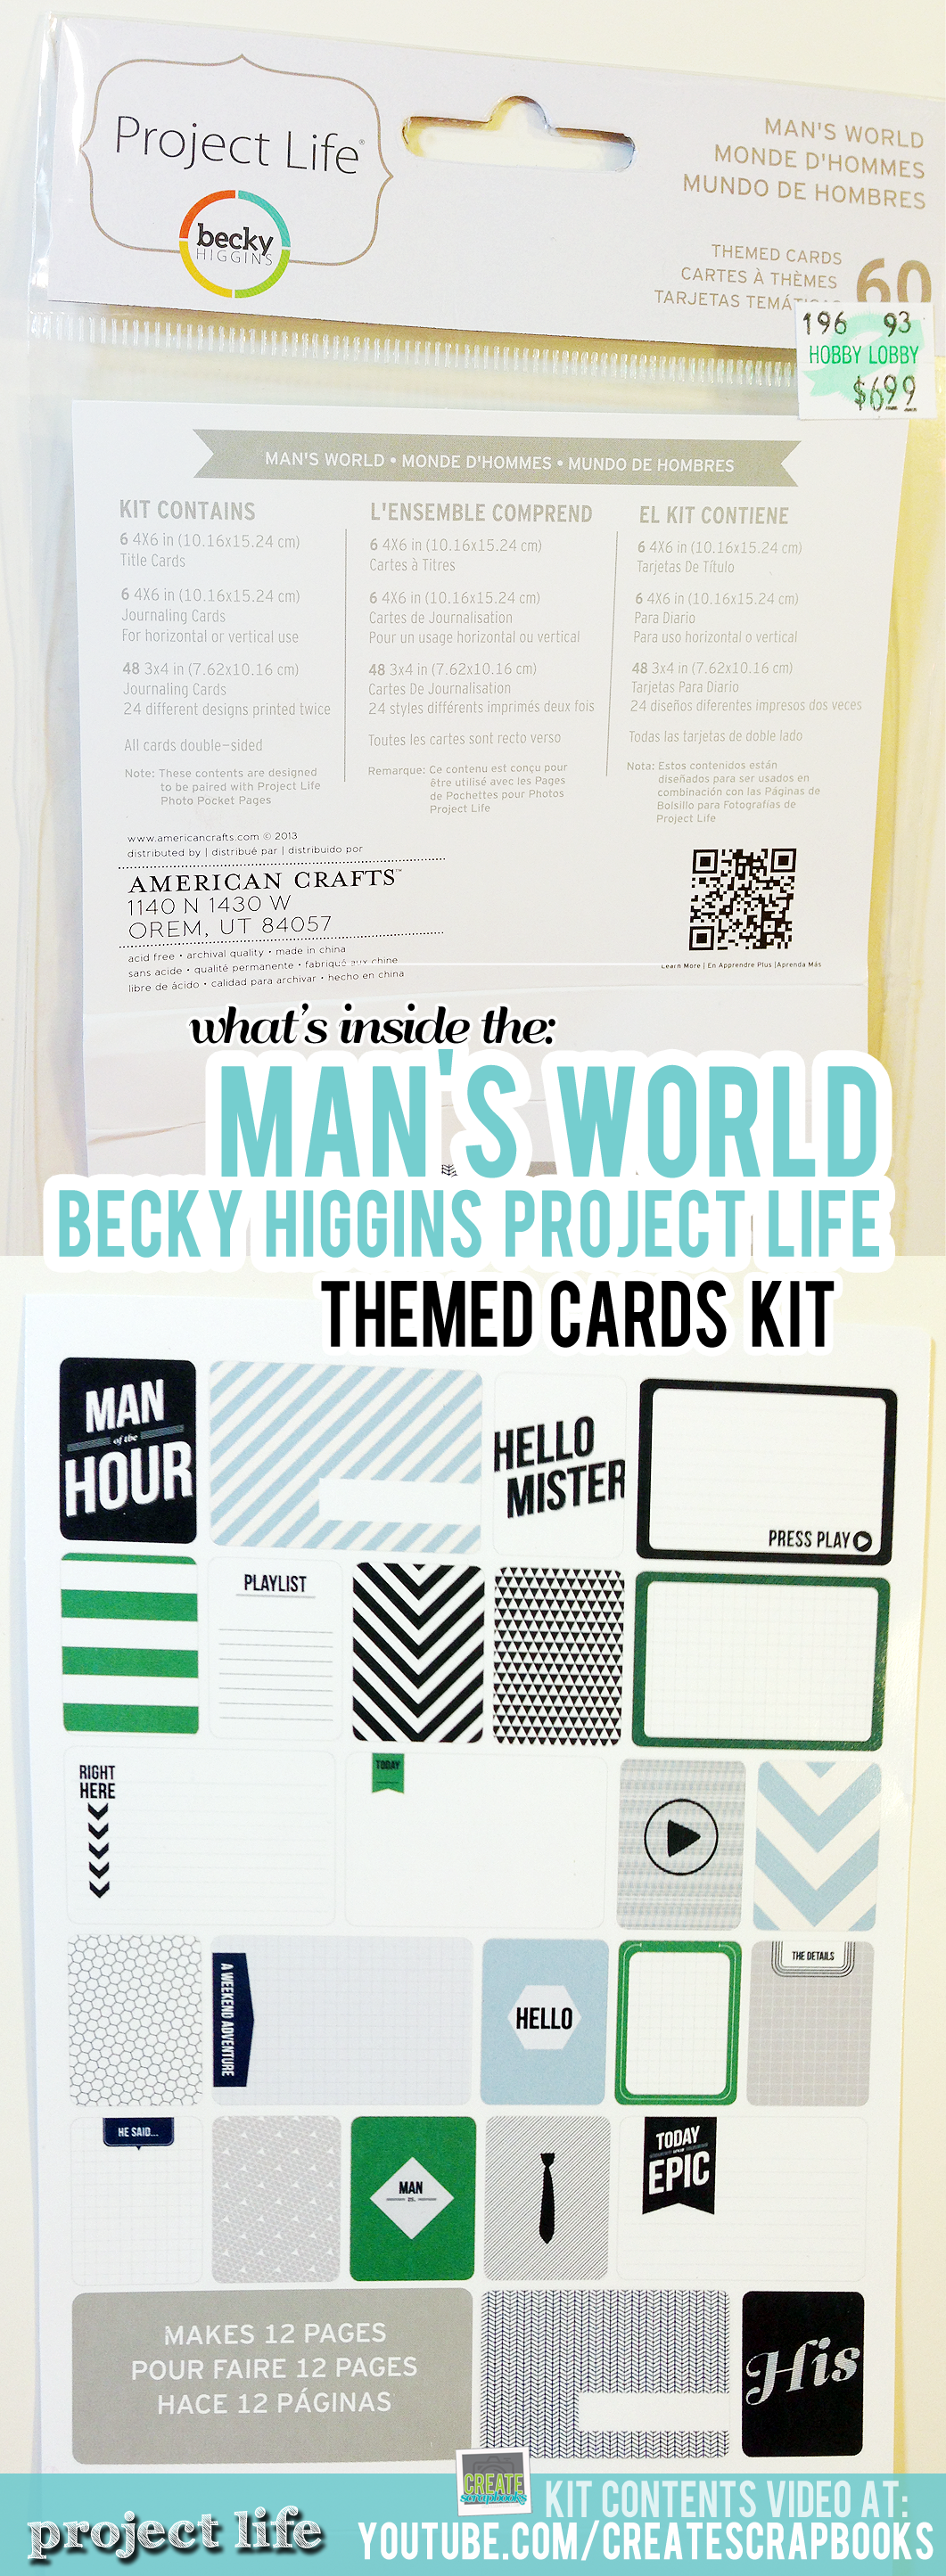 CreateScrapbooks.com Video of What's Inside the Man's World Themed Cards Kit, Project Life by Becky Higgins